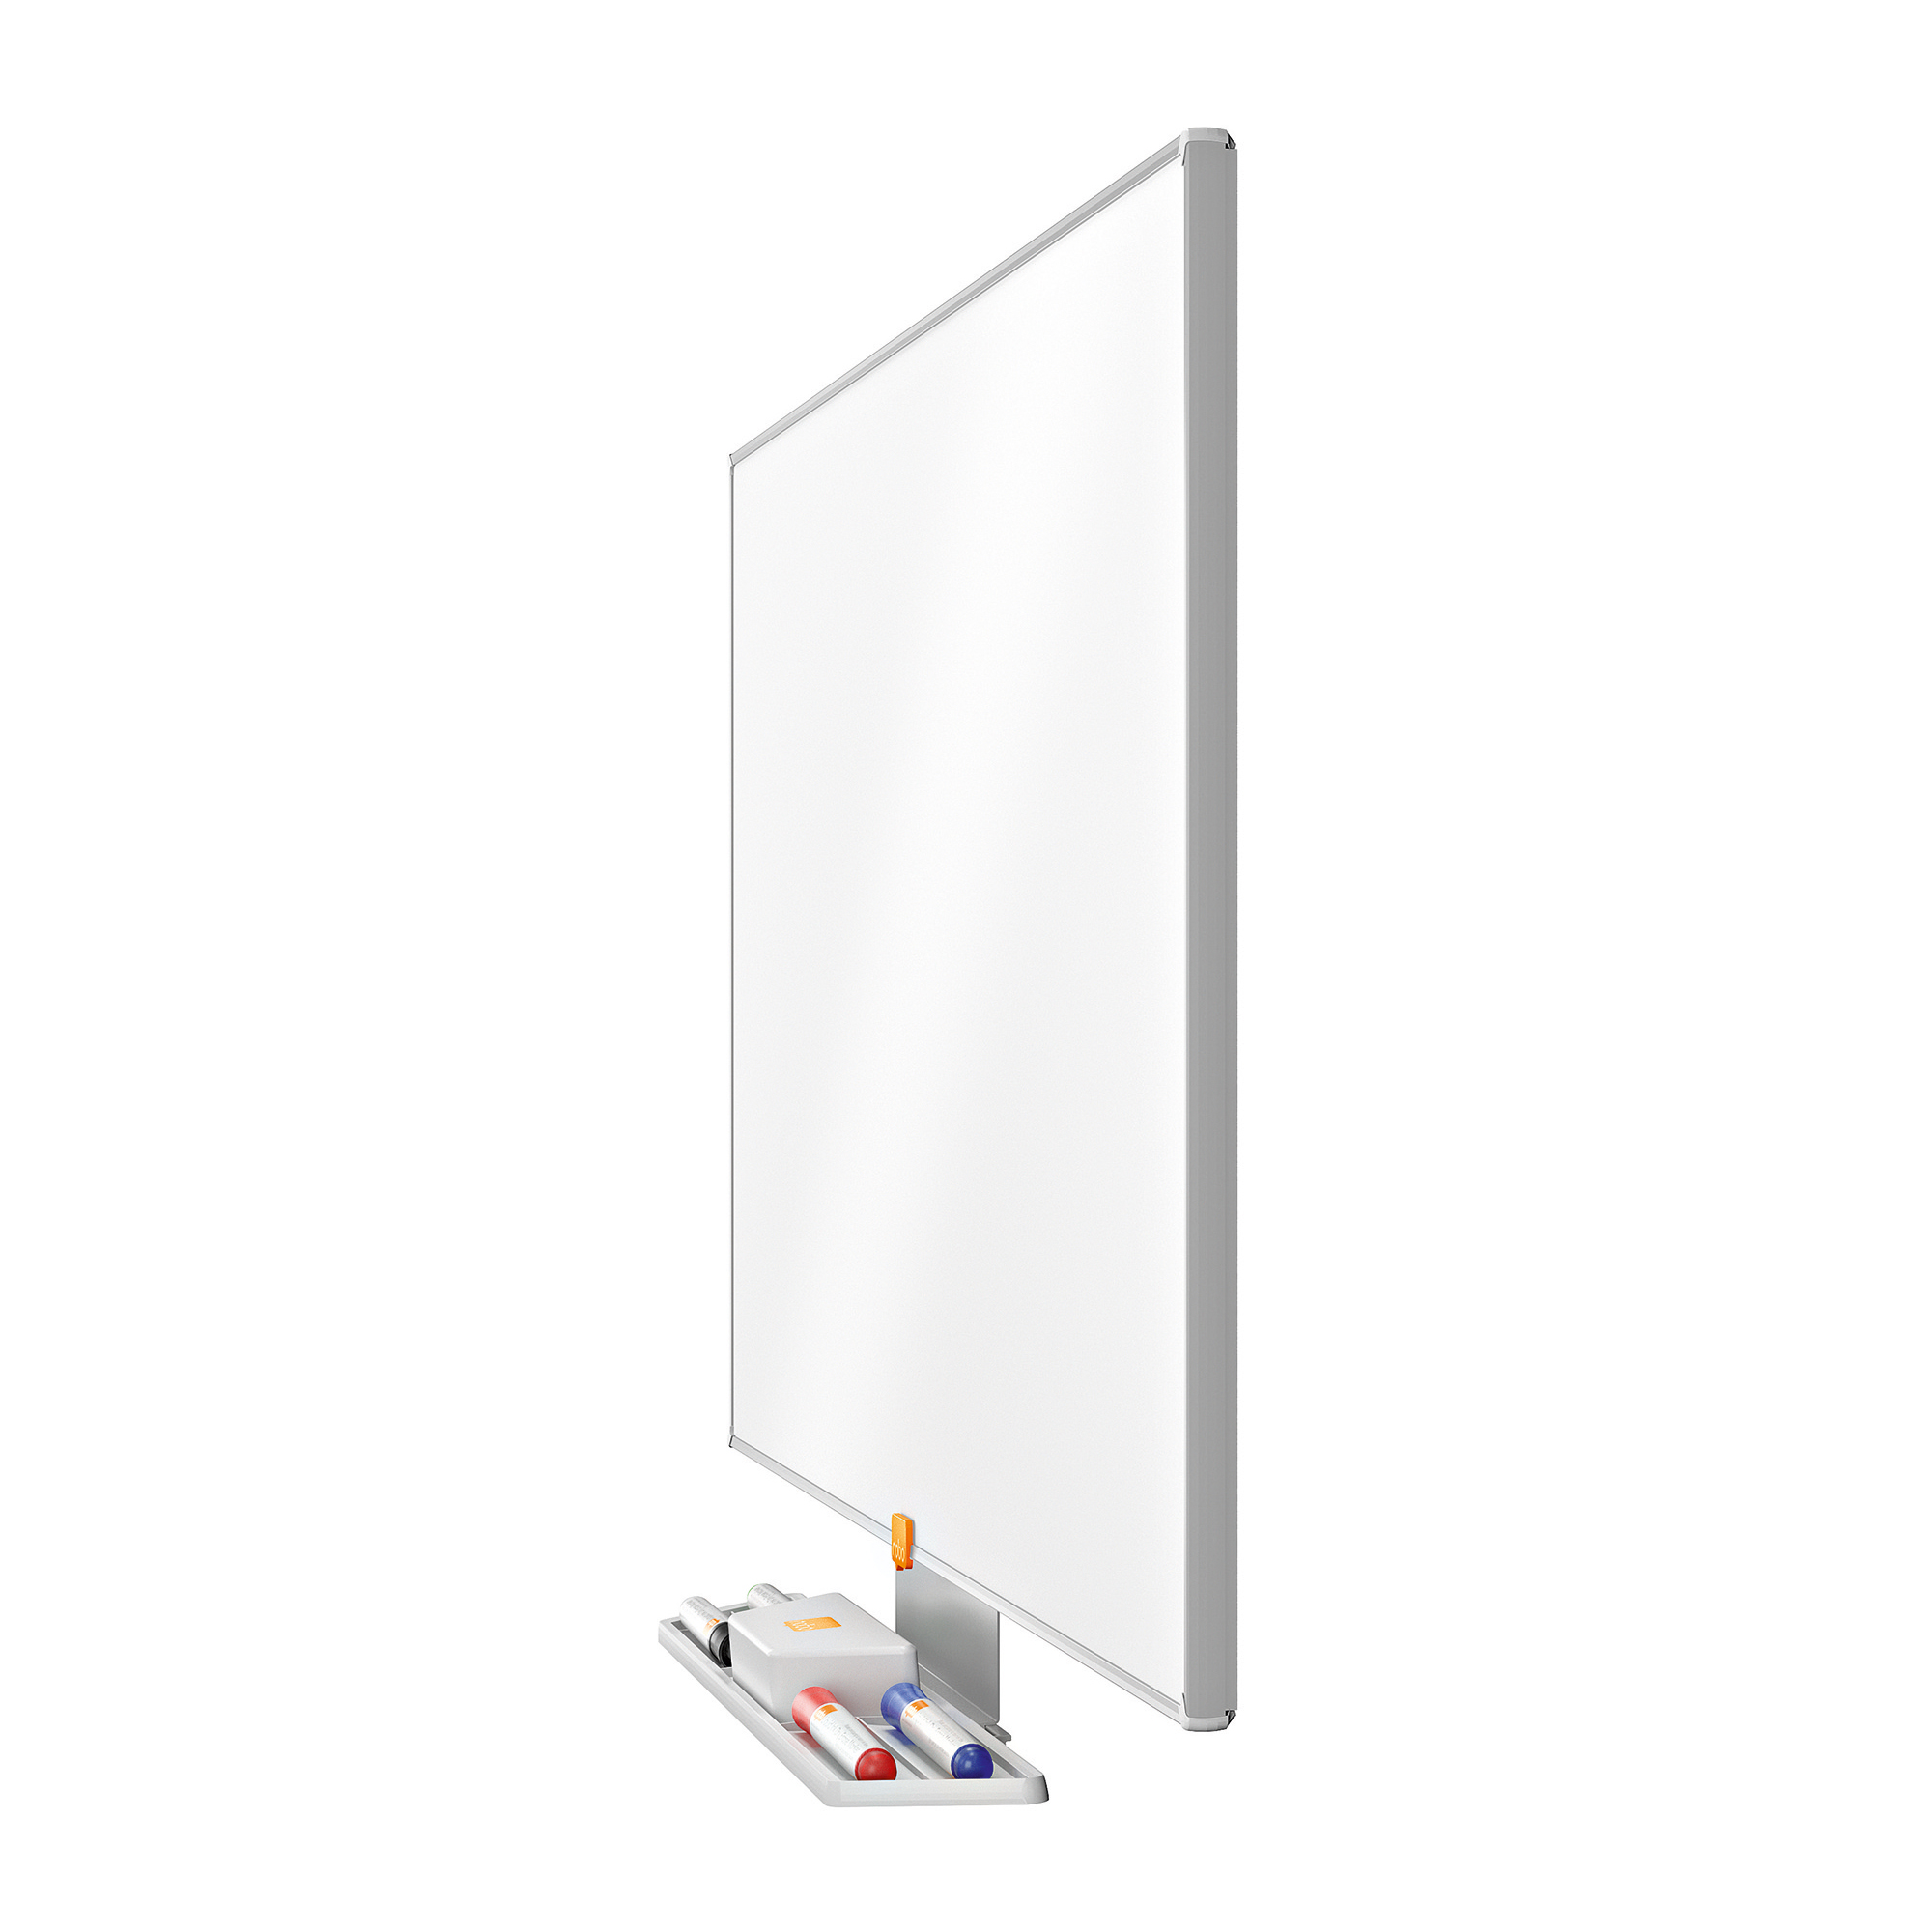 Nobo Widescreen 40 inch Whiteboard Melamine Surface Magnetic W898xH510 White Ref 1905292